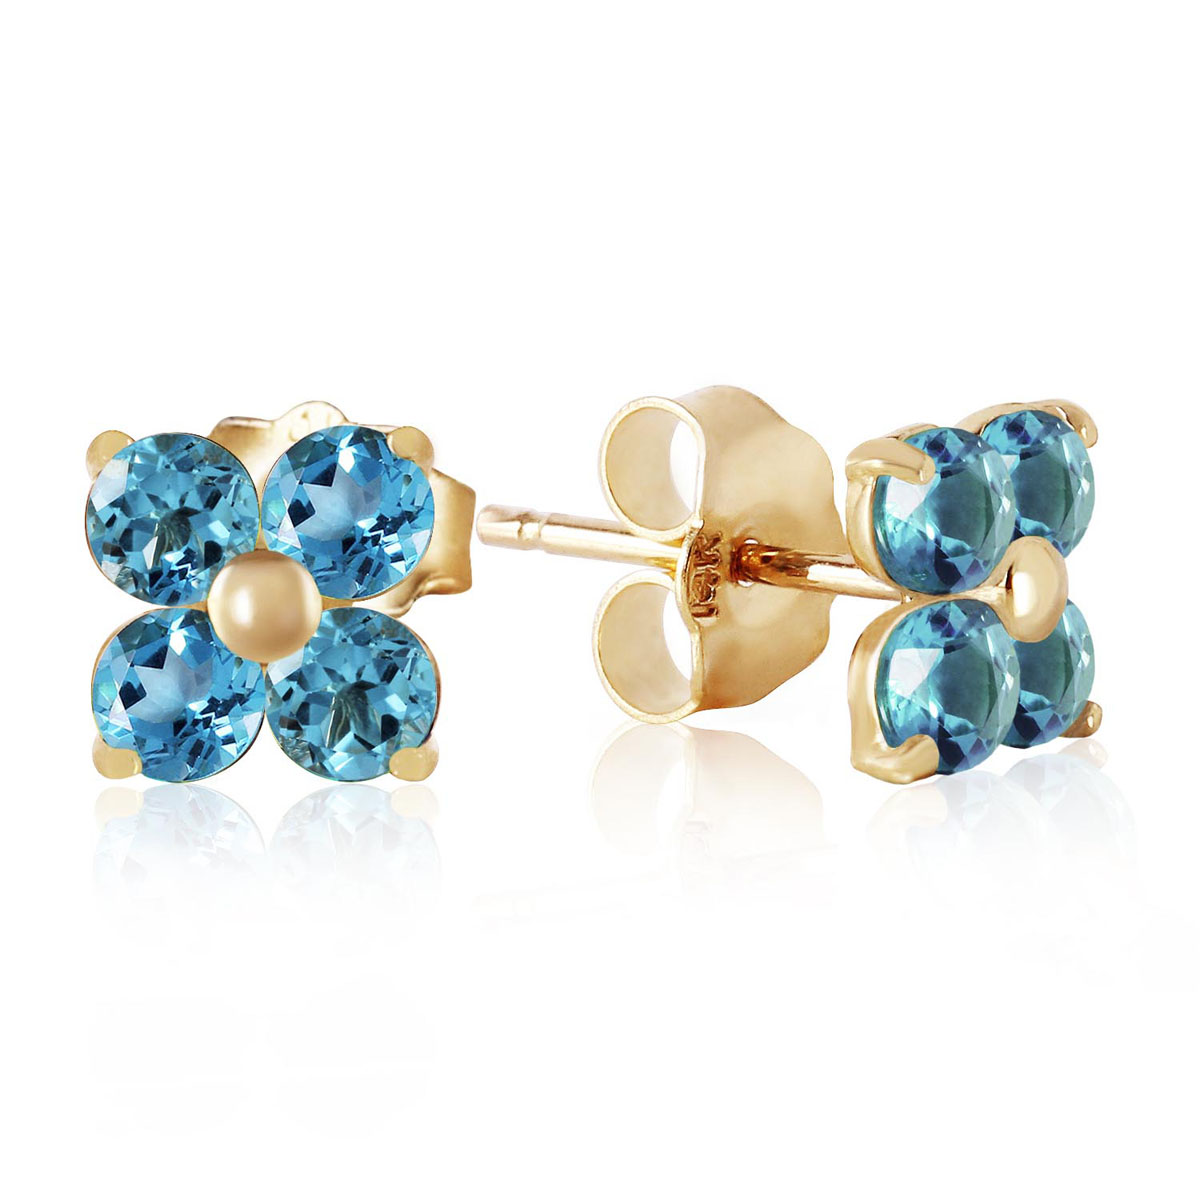 Blue Topaz Clover Stud Earrings 1.15 ctw in 9ct Gold